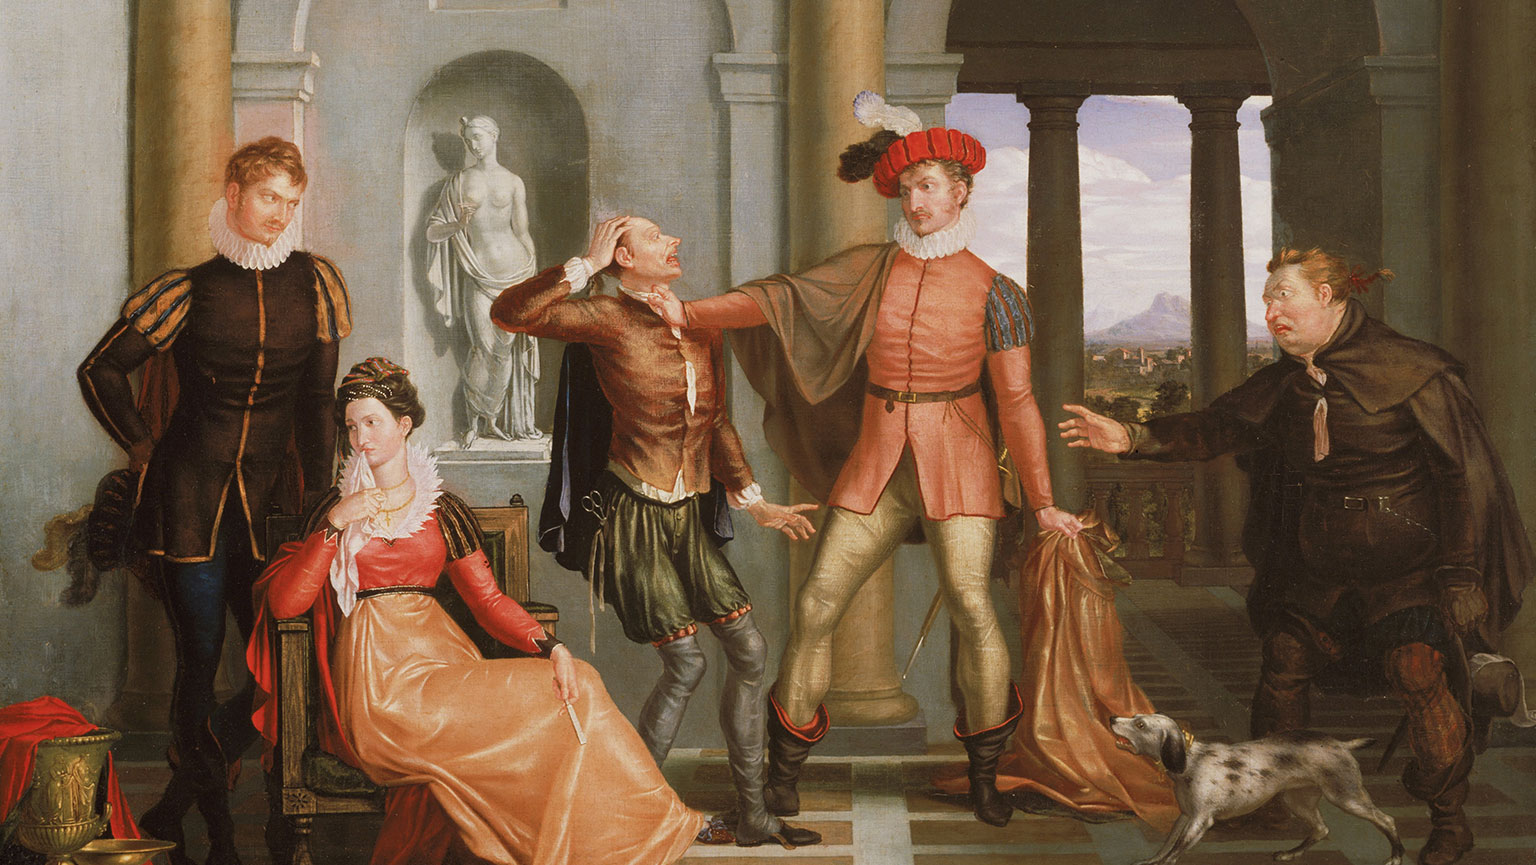 The Taming of the Shrew—Farce and Romance